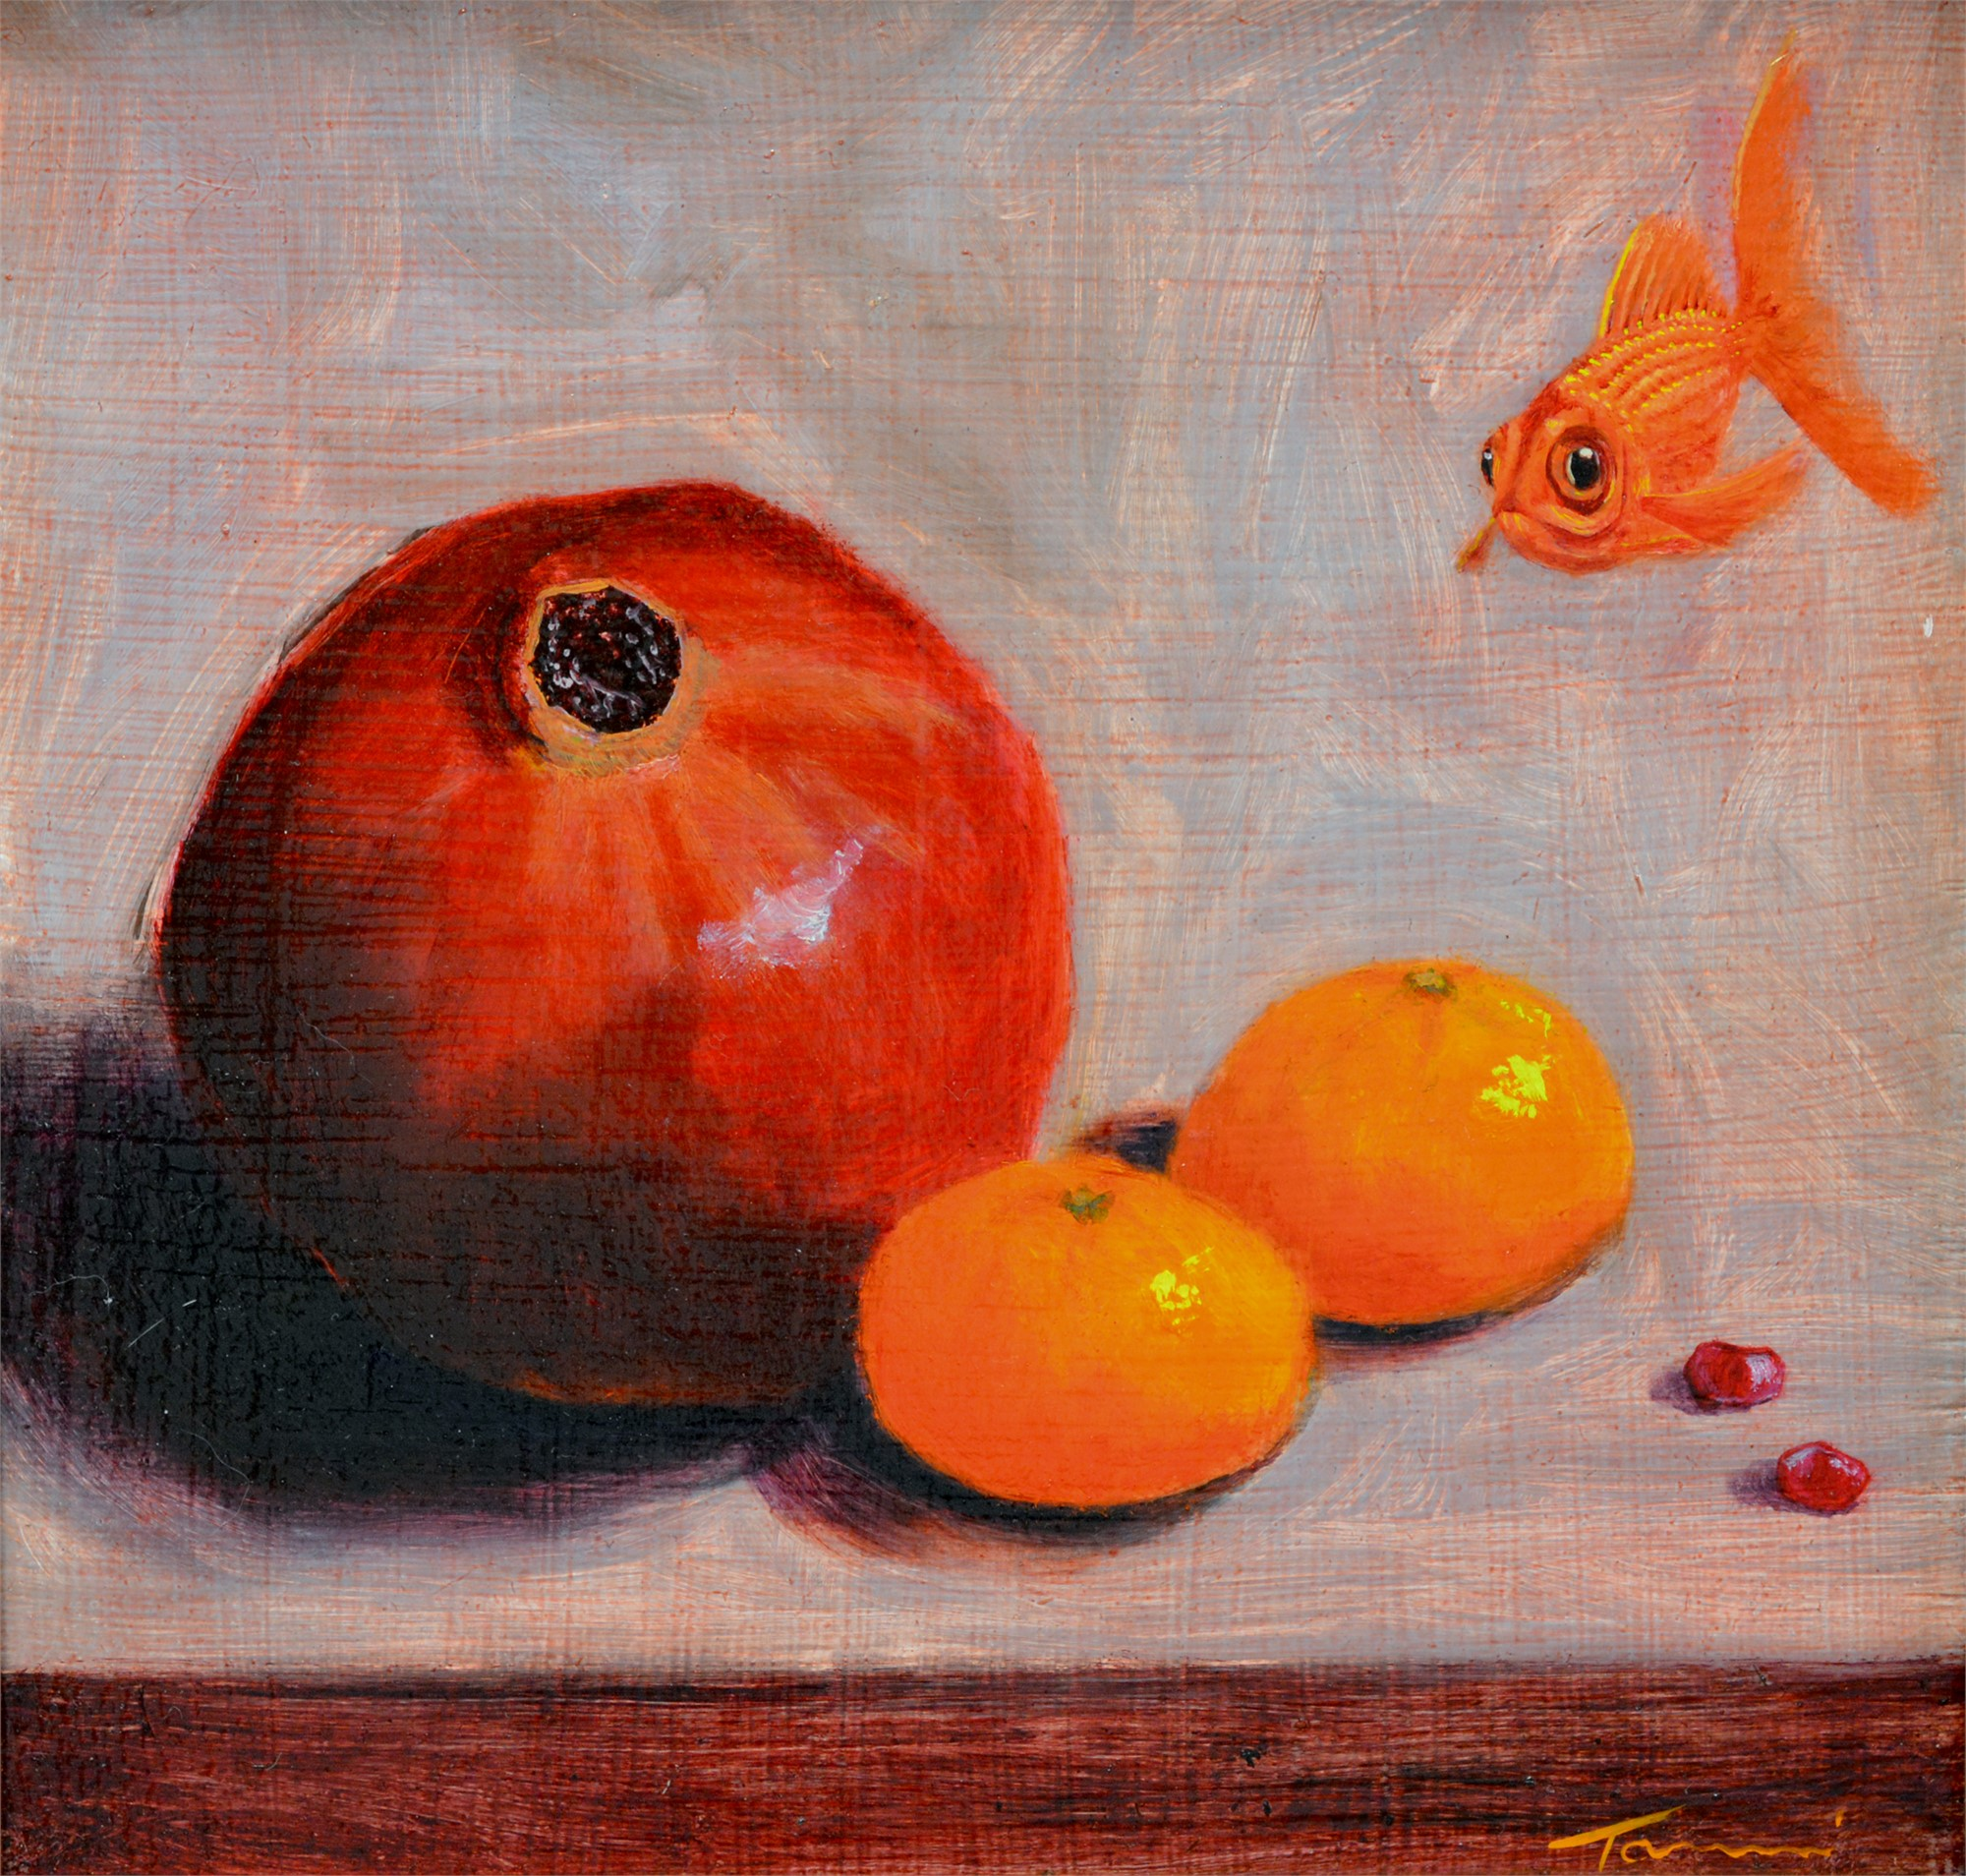 And Then I Ate the Fish by Tammi Otis